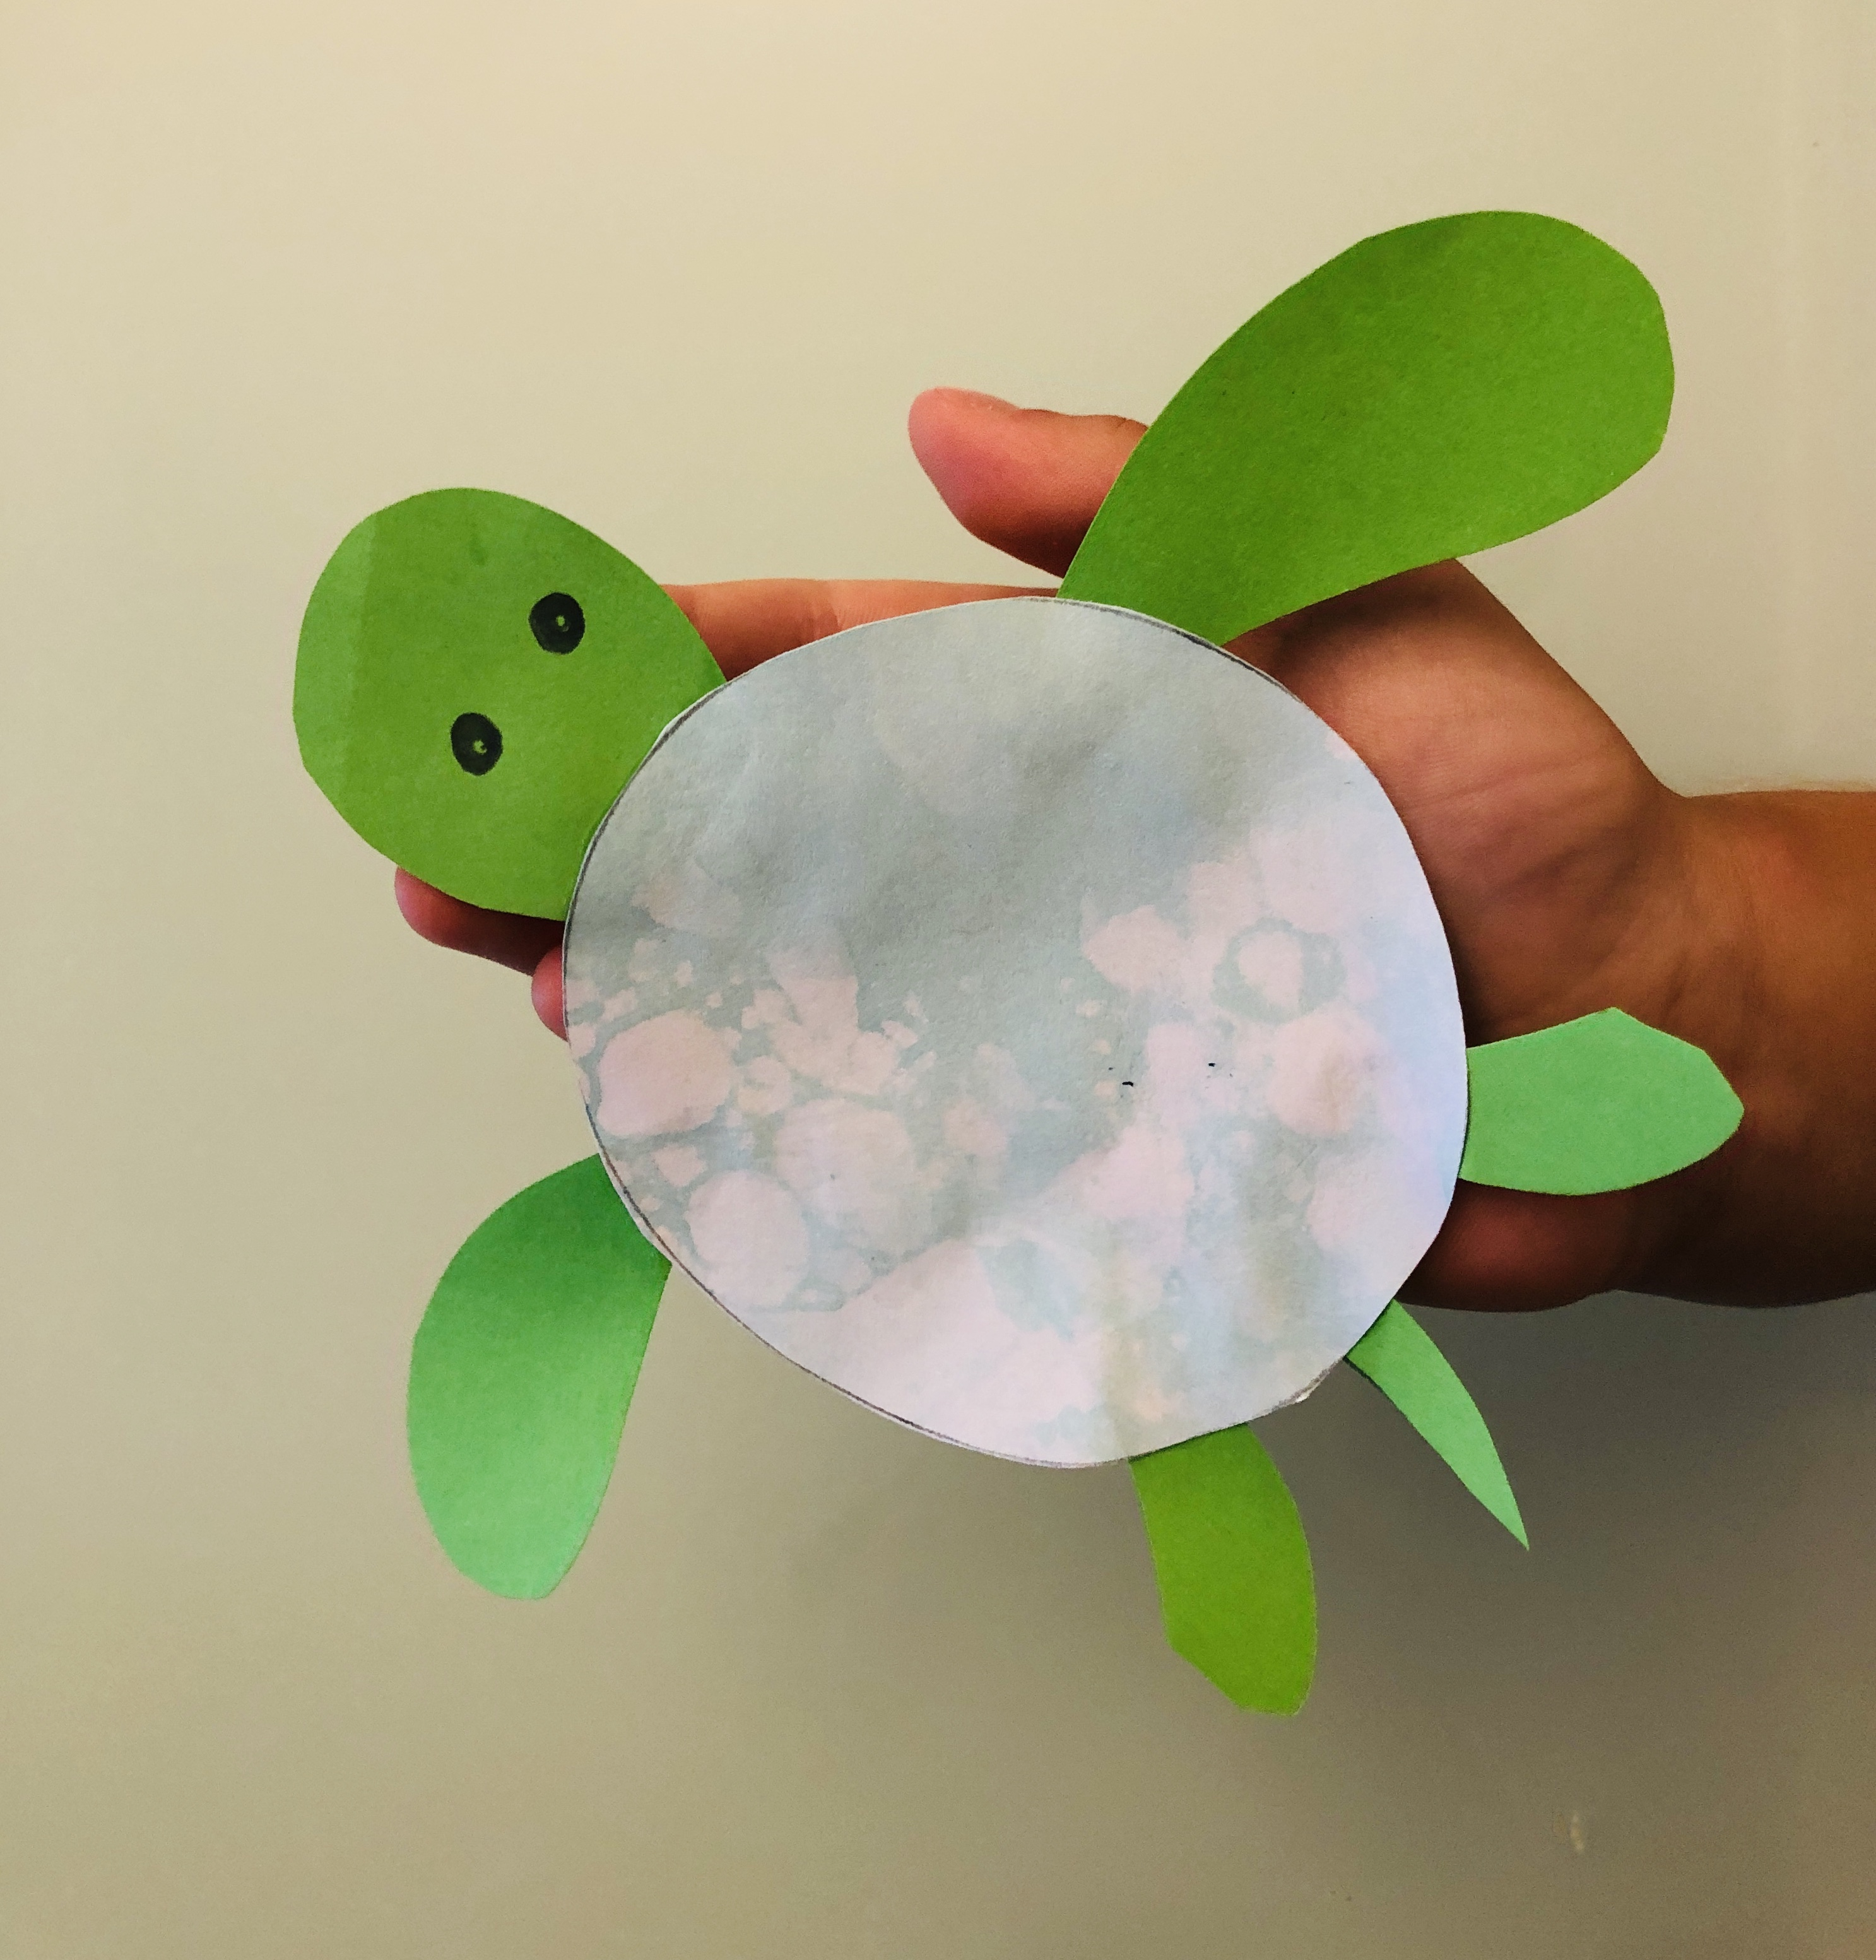 kid holding a paper turtle